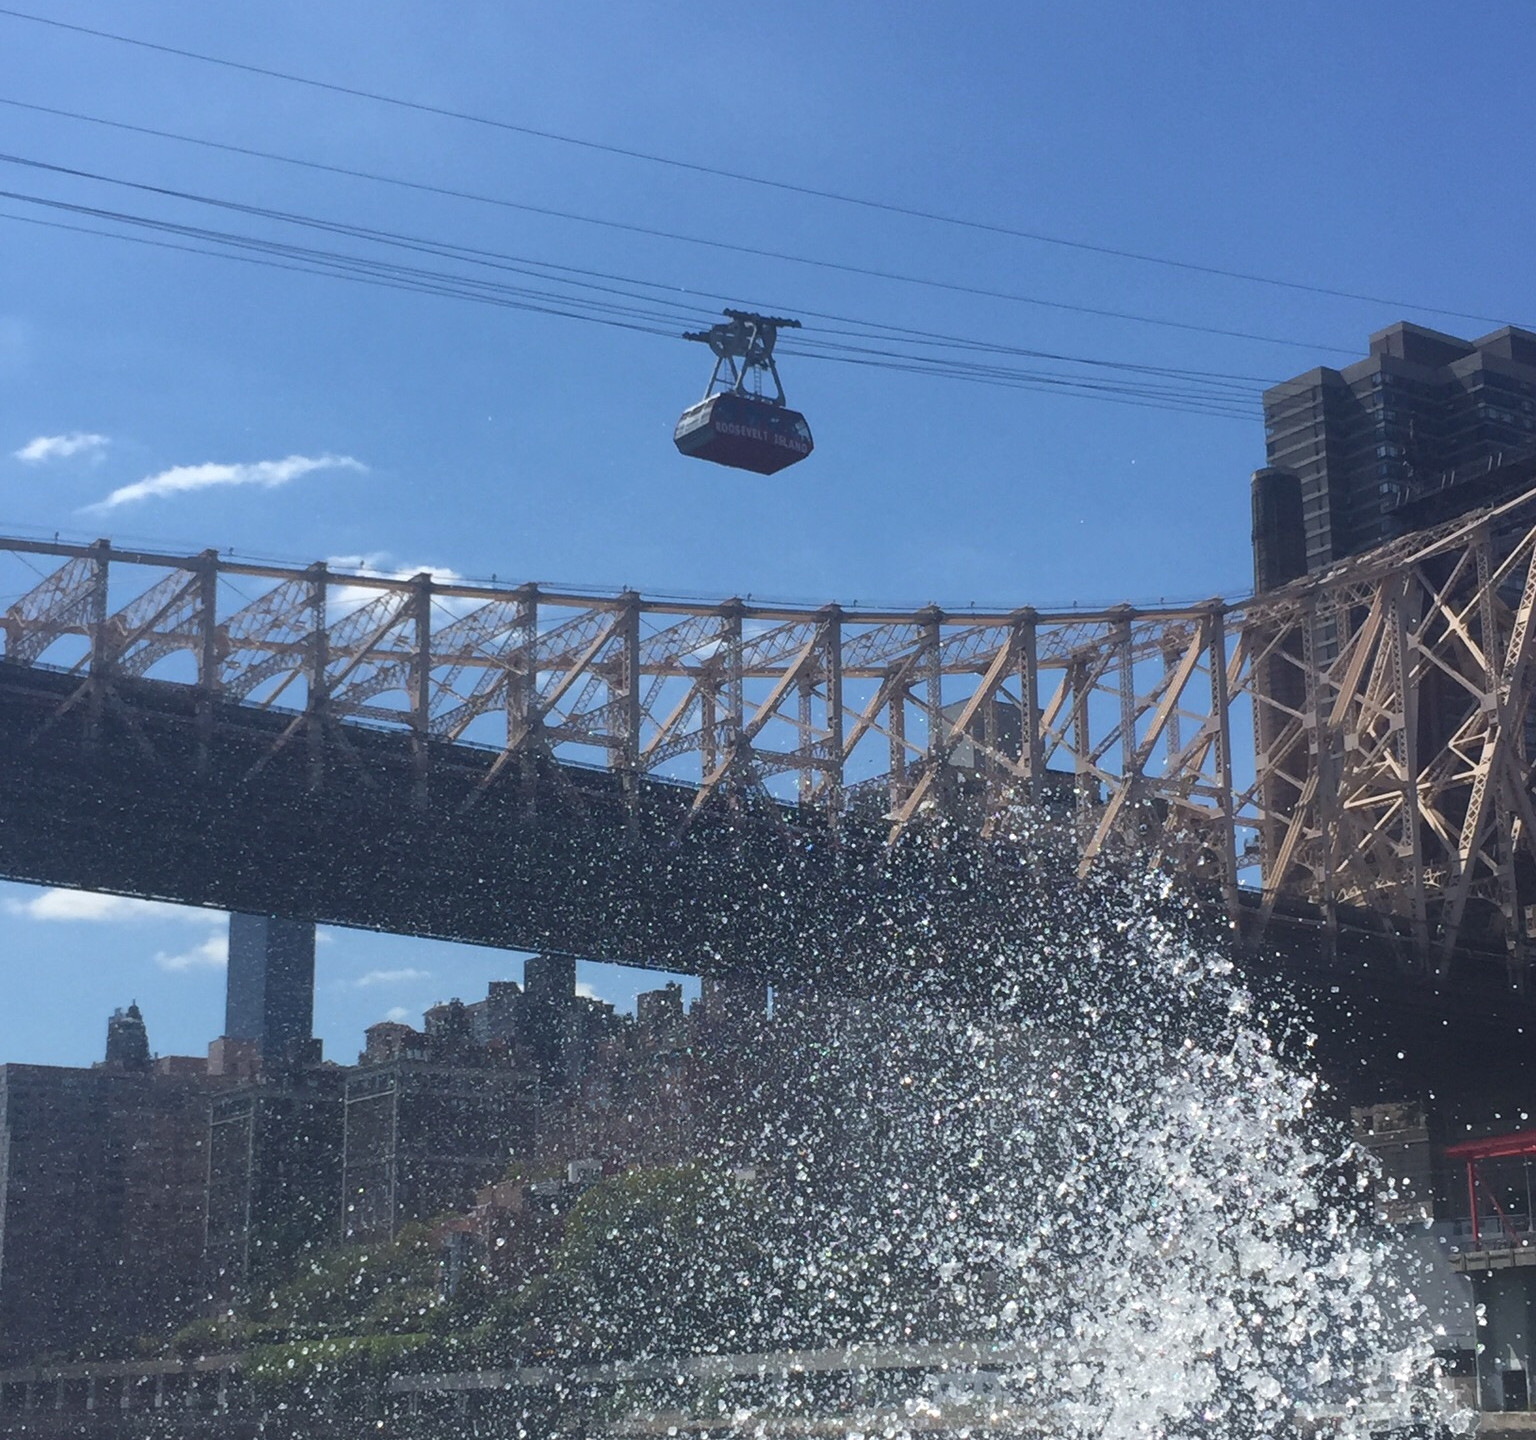 Going under the 59th Street Bridge there's a tram that takes passengers to Roosevelt Island.